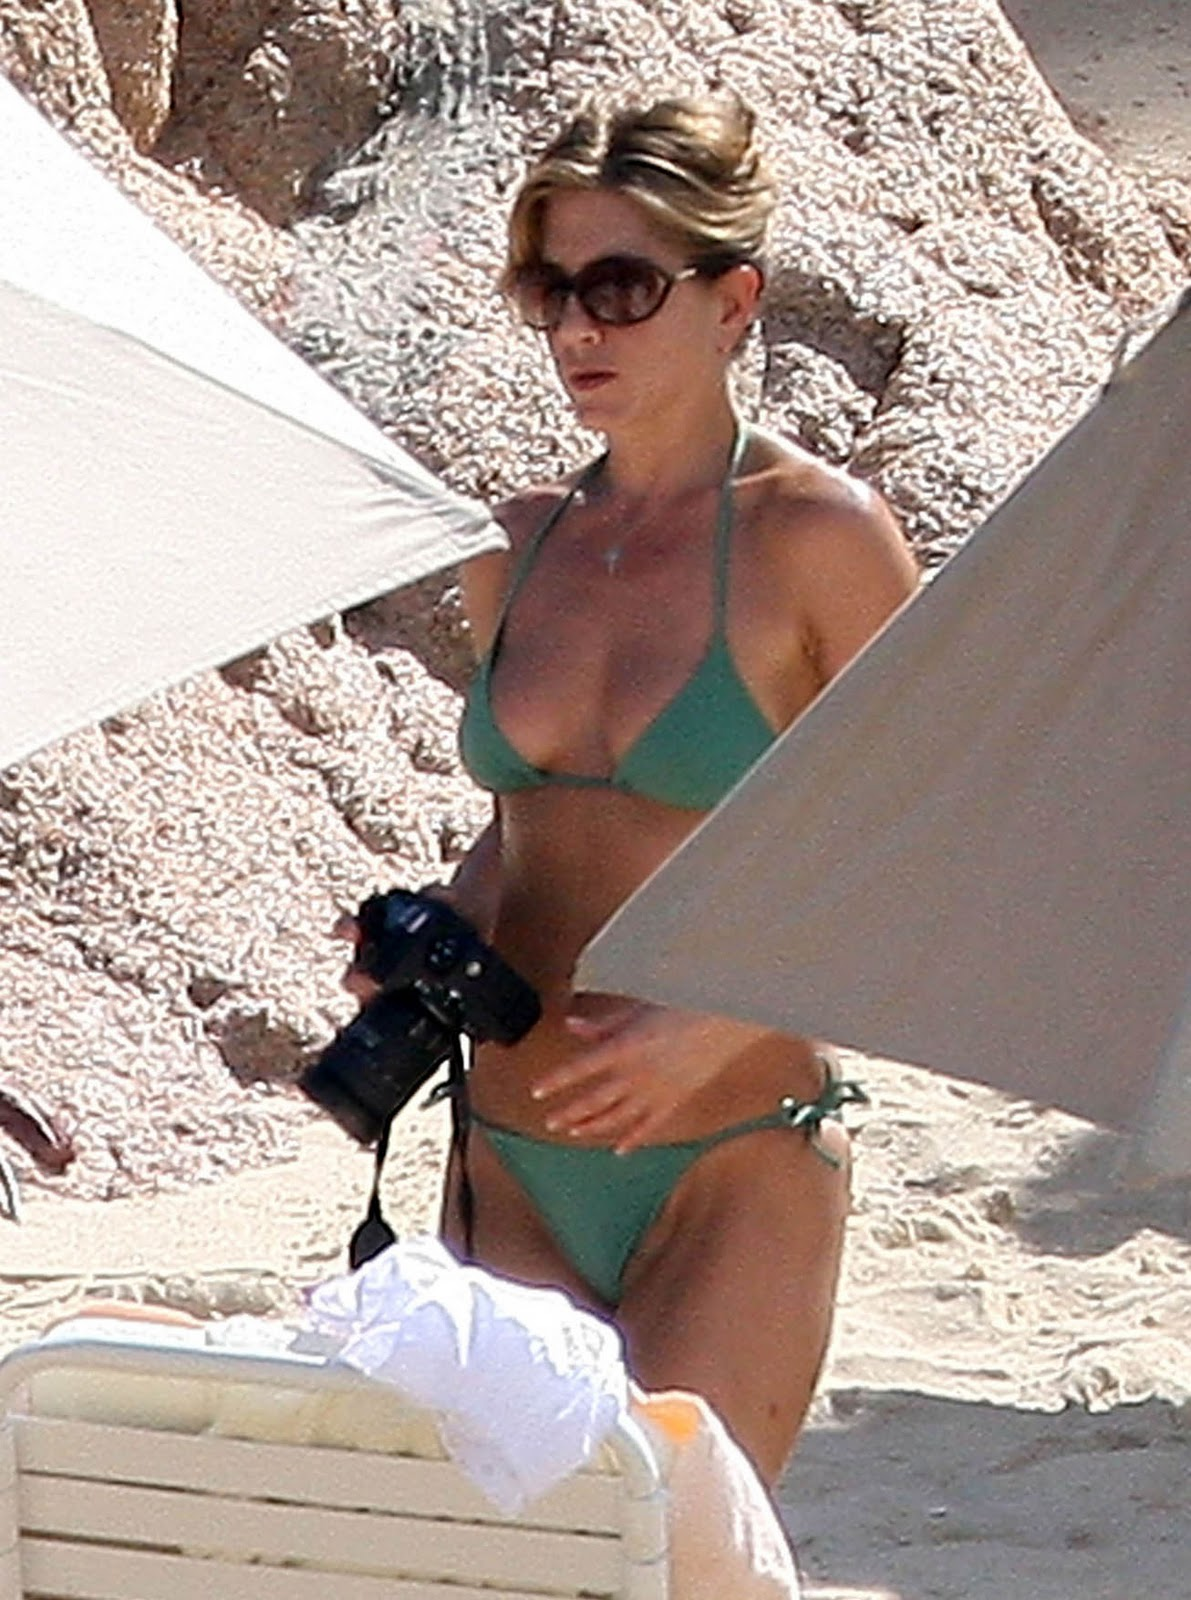 http://1.bp.blogspot.com/-DZuewdvl1Oc/ToZj1aTvBkI/AAAAAAAAXzo/fcfow6klDPA/s1600/Jennifer+Aniston+looks+hot+in+sweet+green+bikini+01.jpg